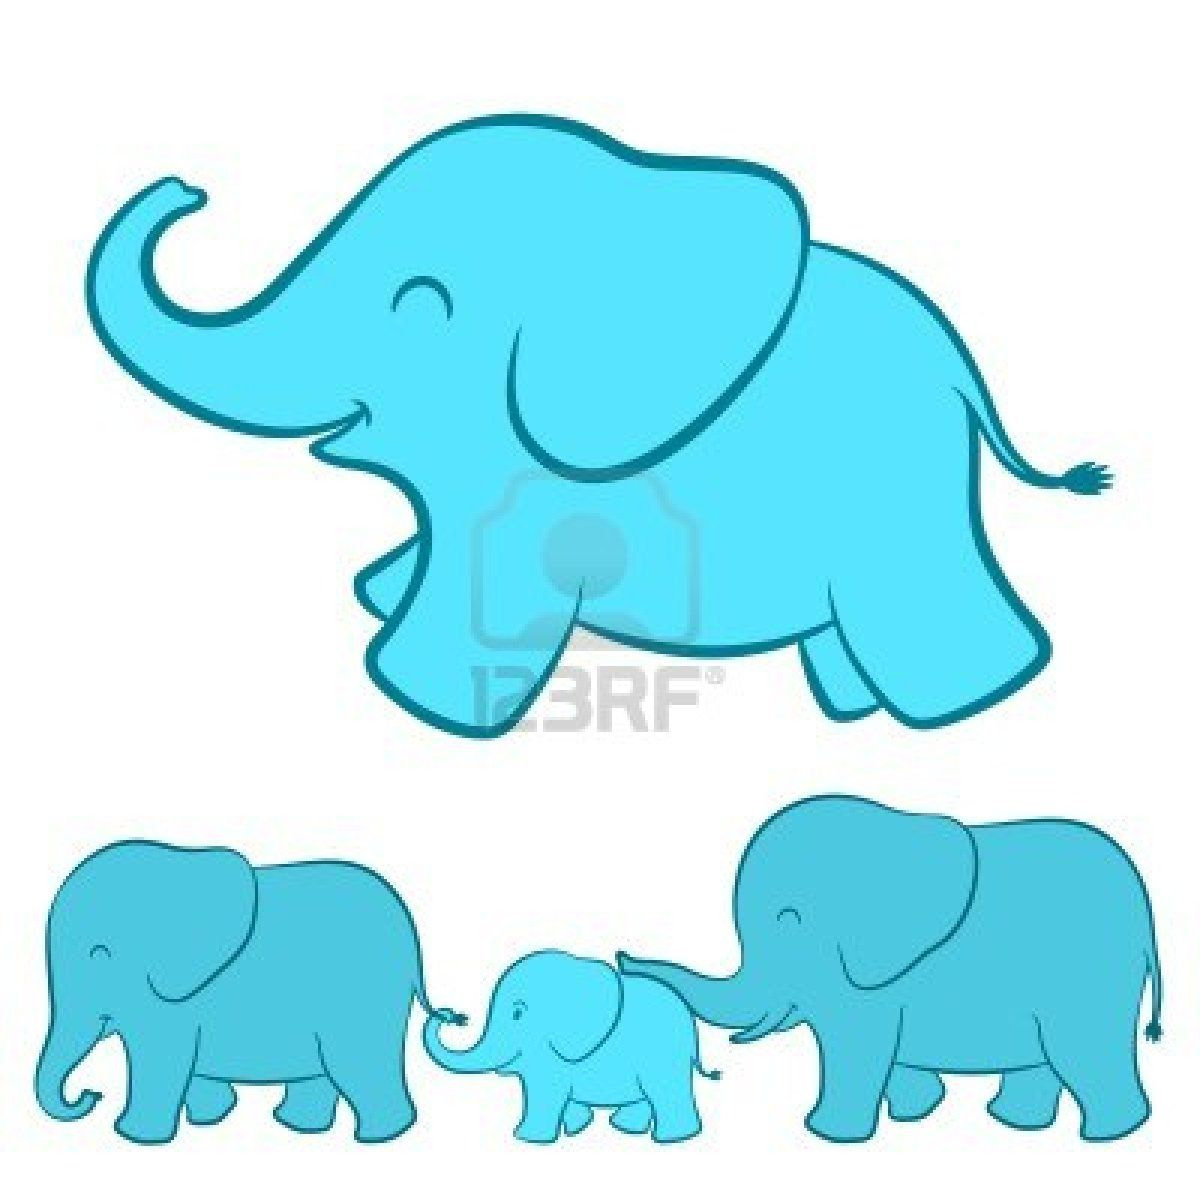 1200x1200 Cartoon Baby Elephant Family Inspiration For Cute Eye On The Baby